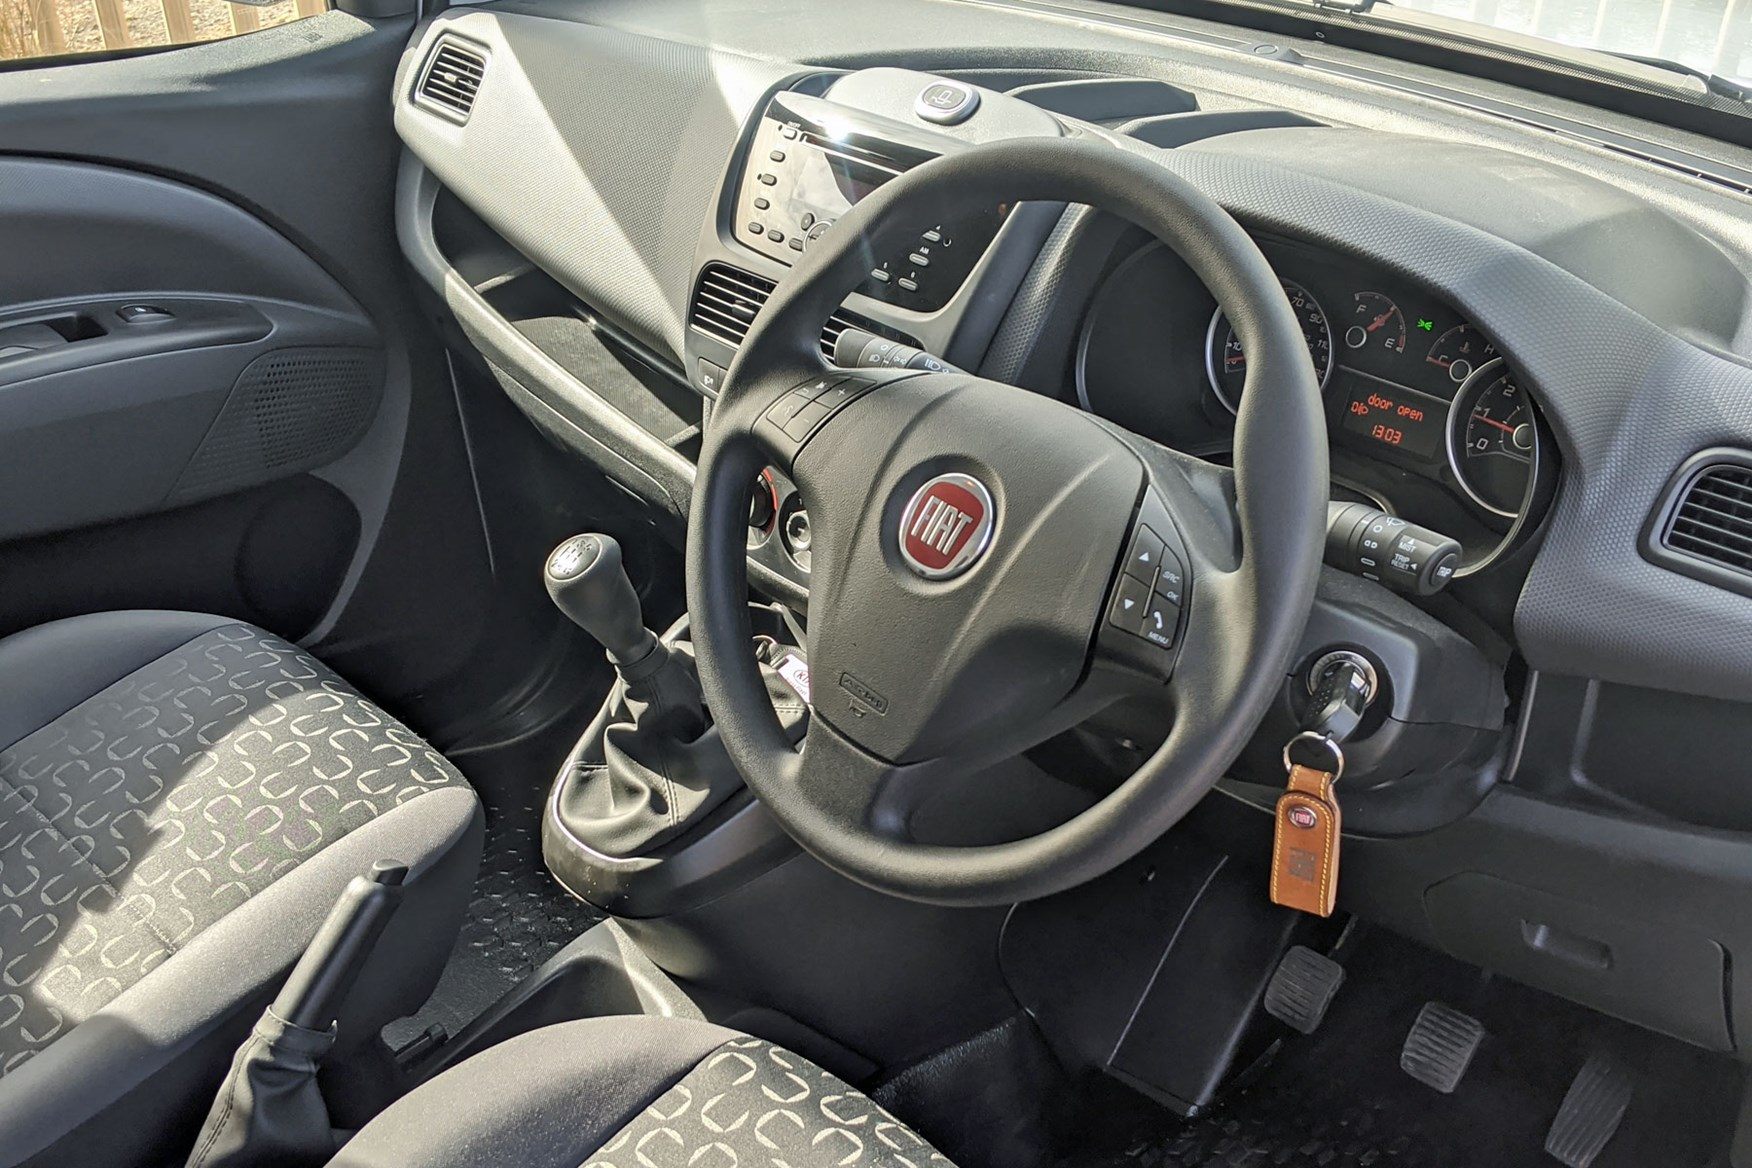 Fiat Doblo review - cab interior, 2020